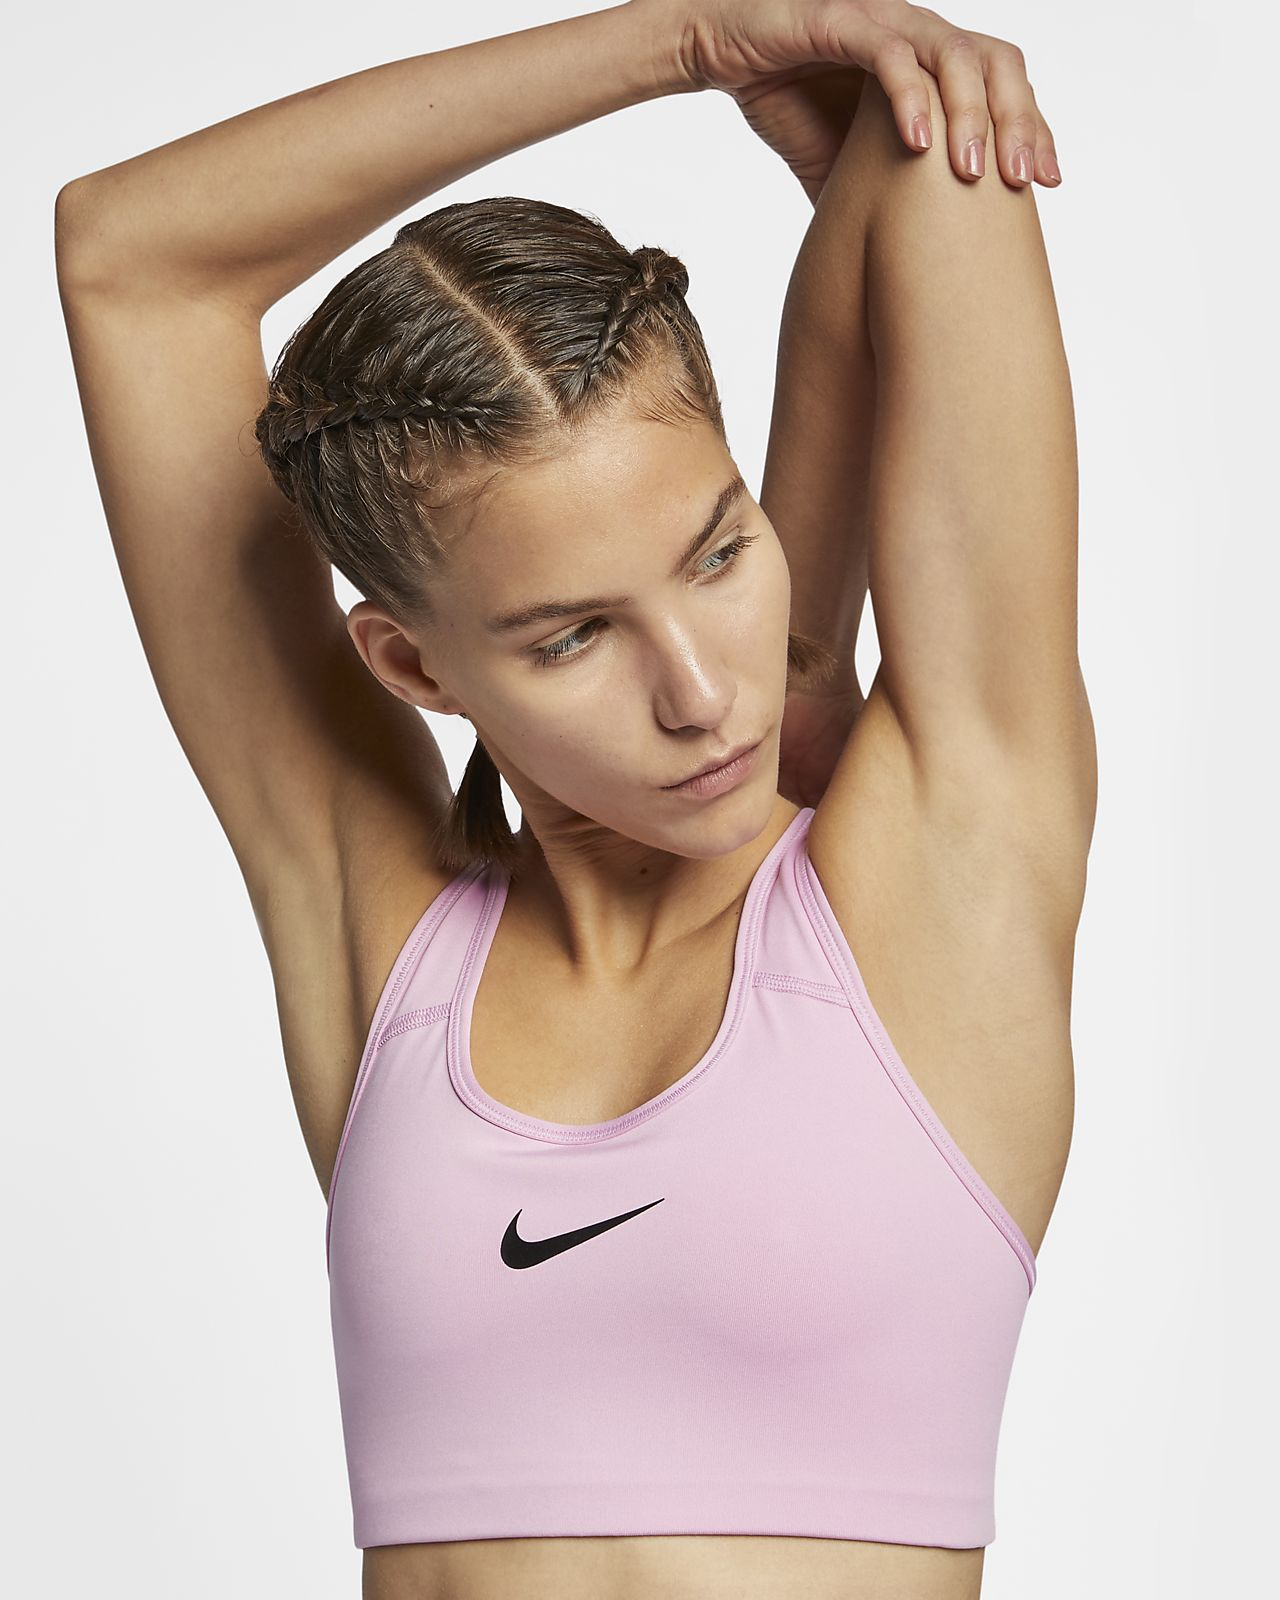 855e40d7fc Nike Women s Swoosh Medium Support Sports Bra. Nike.com